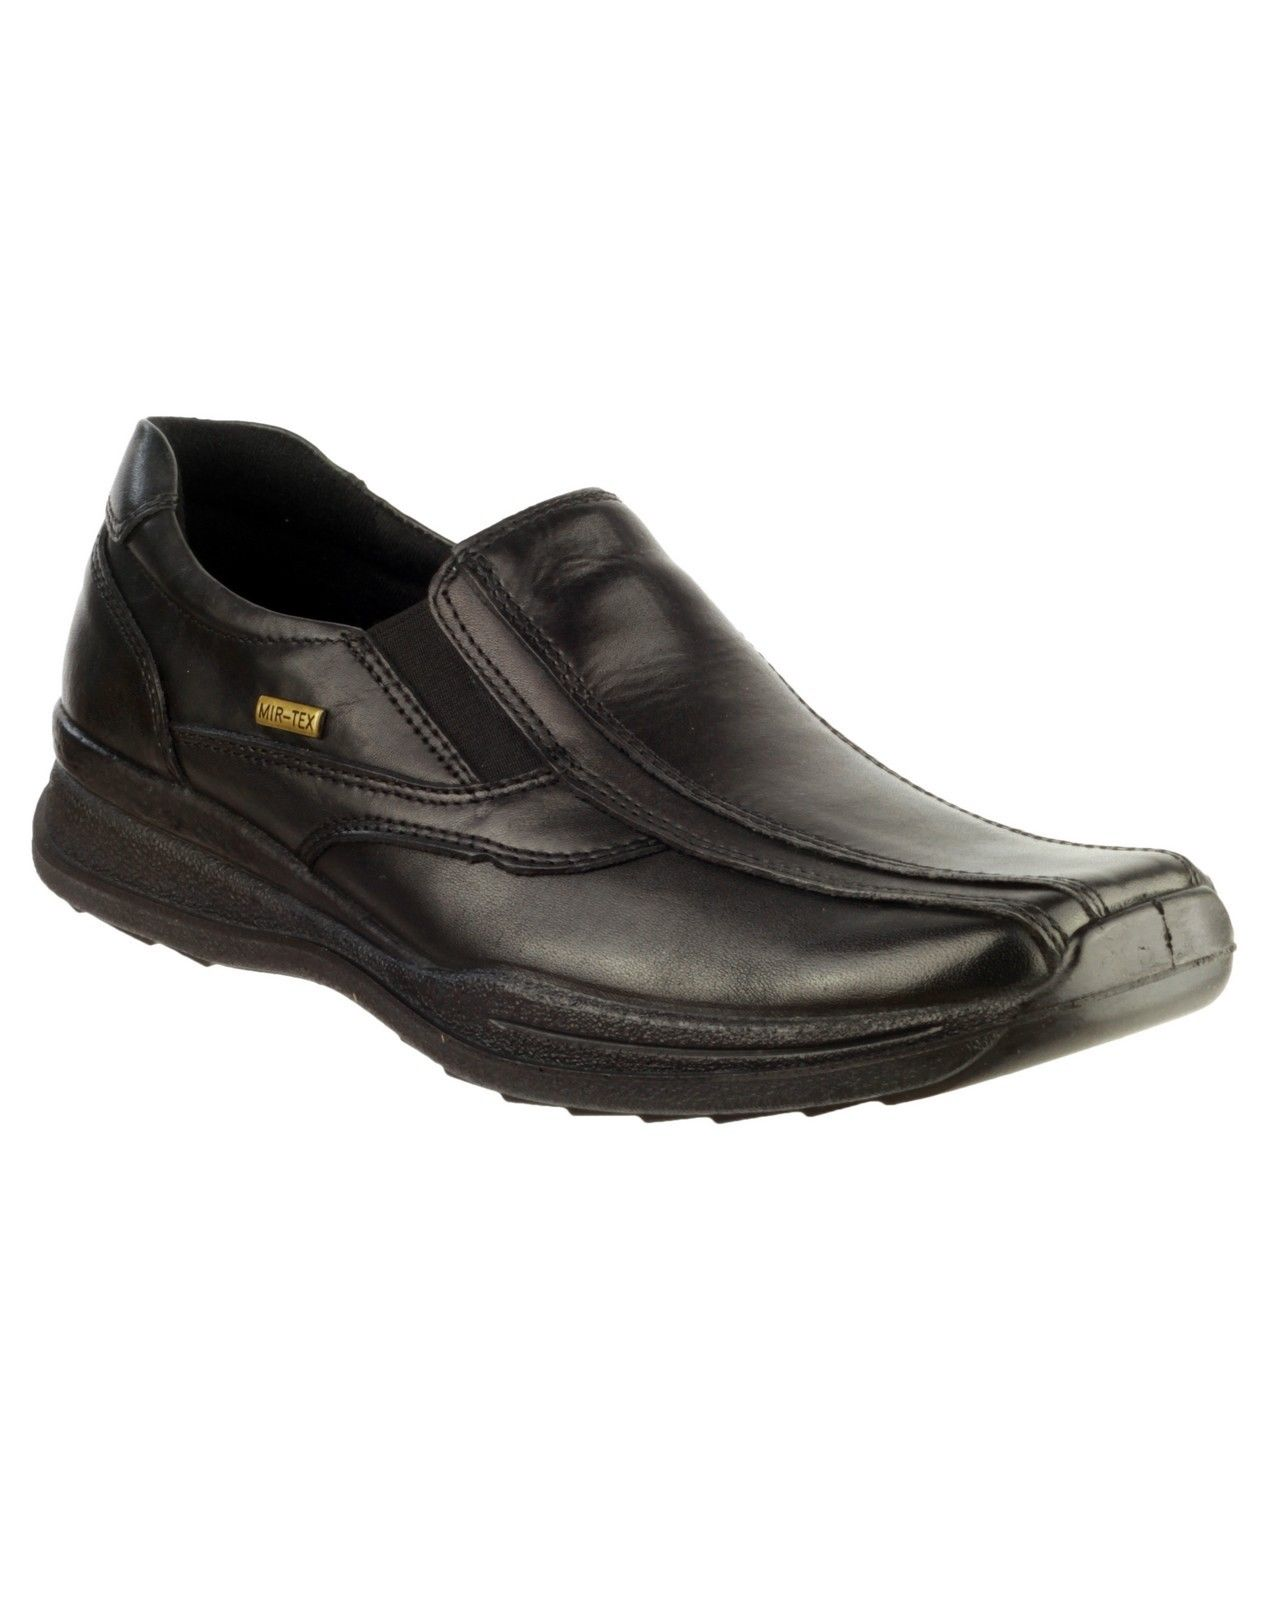 Cotswold Naunton schwarz or Braun smart waterproof comfort Leder slip slip slip on shoe 4afa77